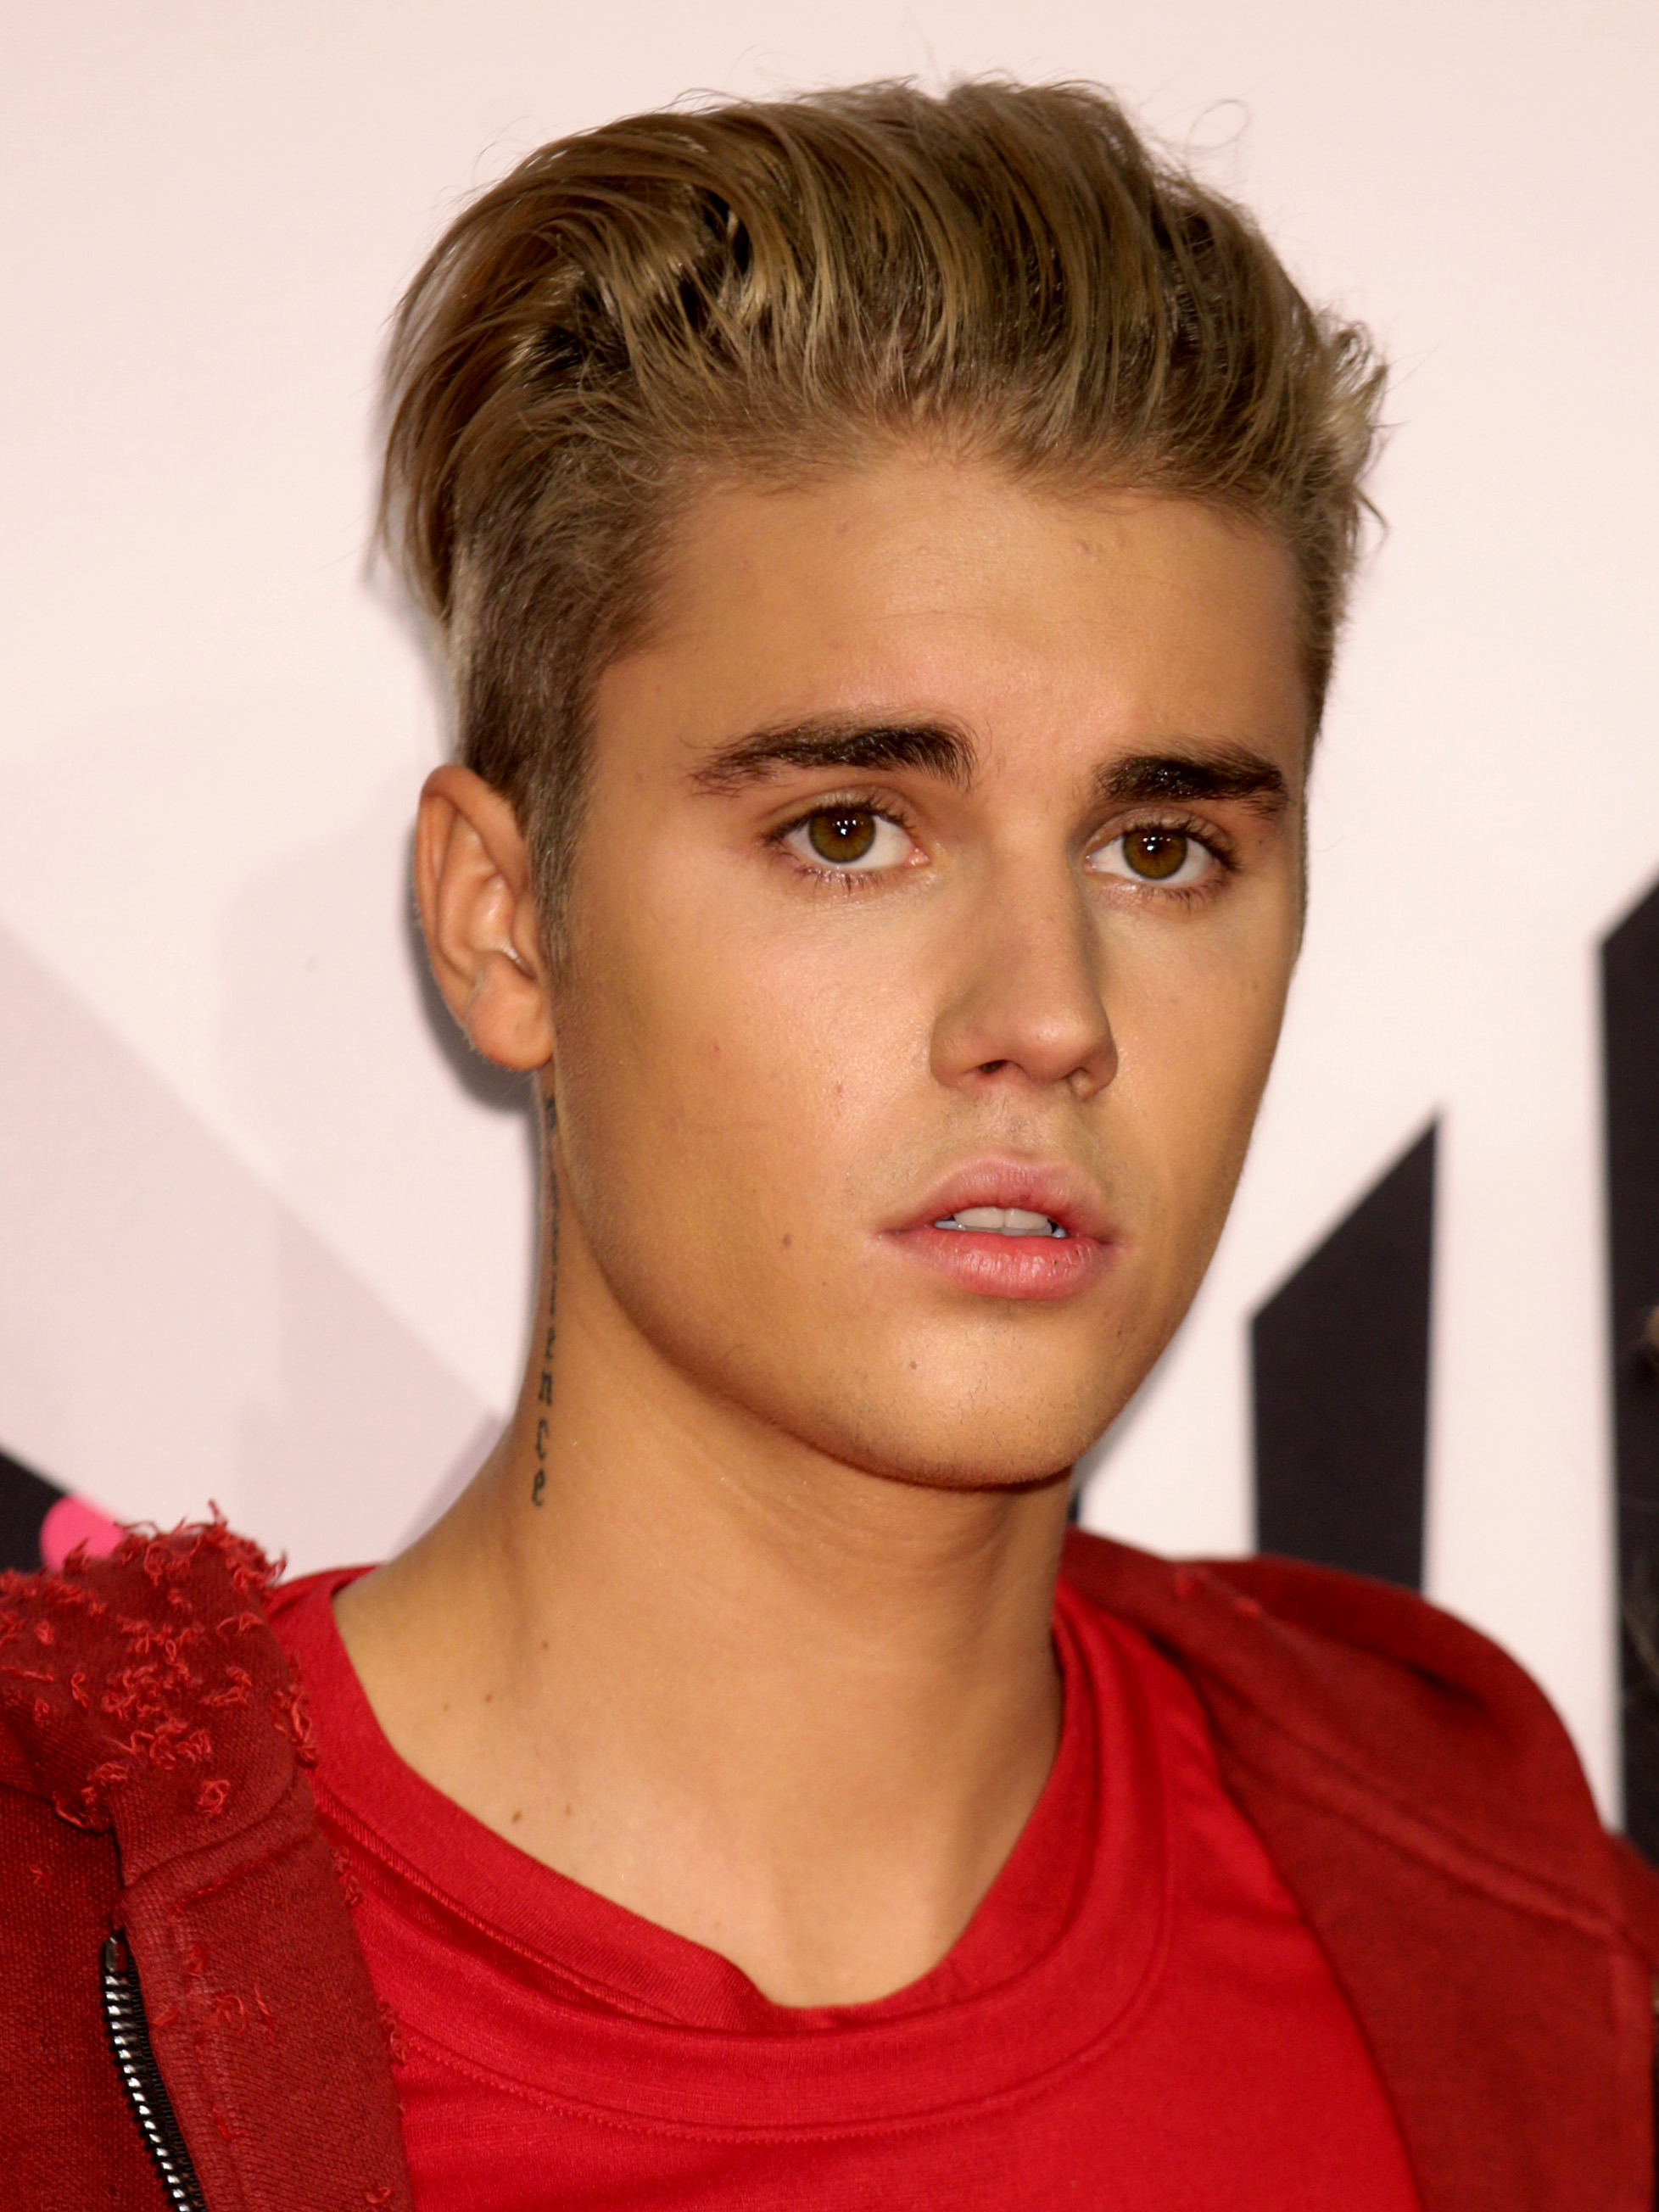 Justin Bieber will not face charges for hitting ...